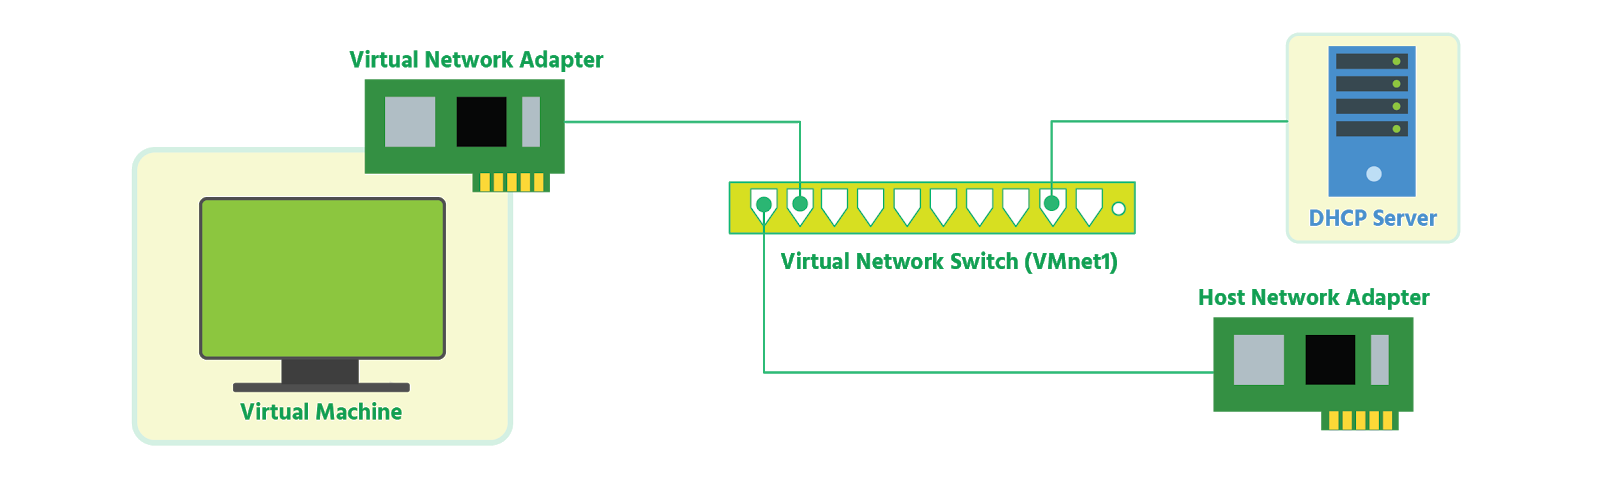 A VM has its vNIC connected to a vswitch called VMnet1 which connects out to a host NIC; from the vswitch, a DHCP server is also connected to one of the ports.